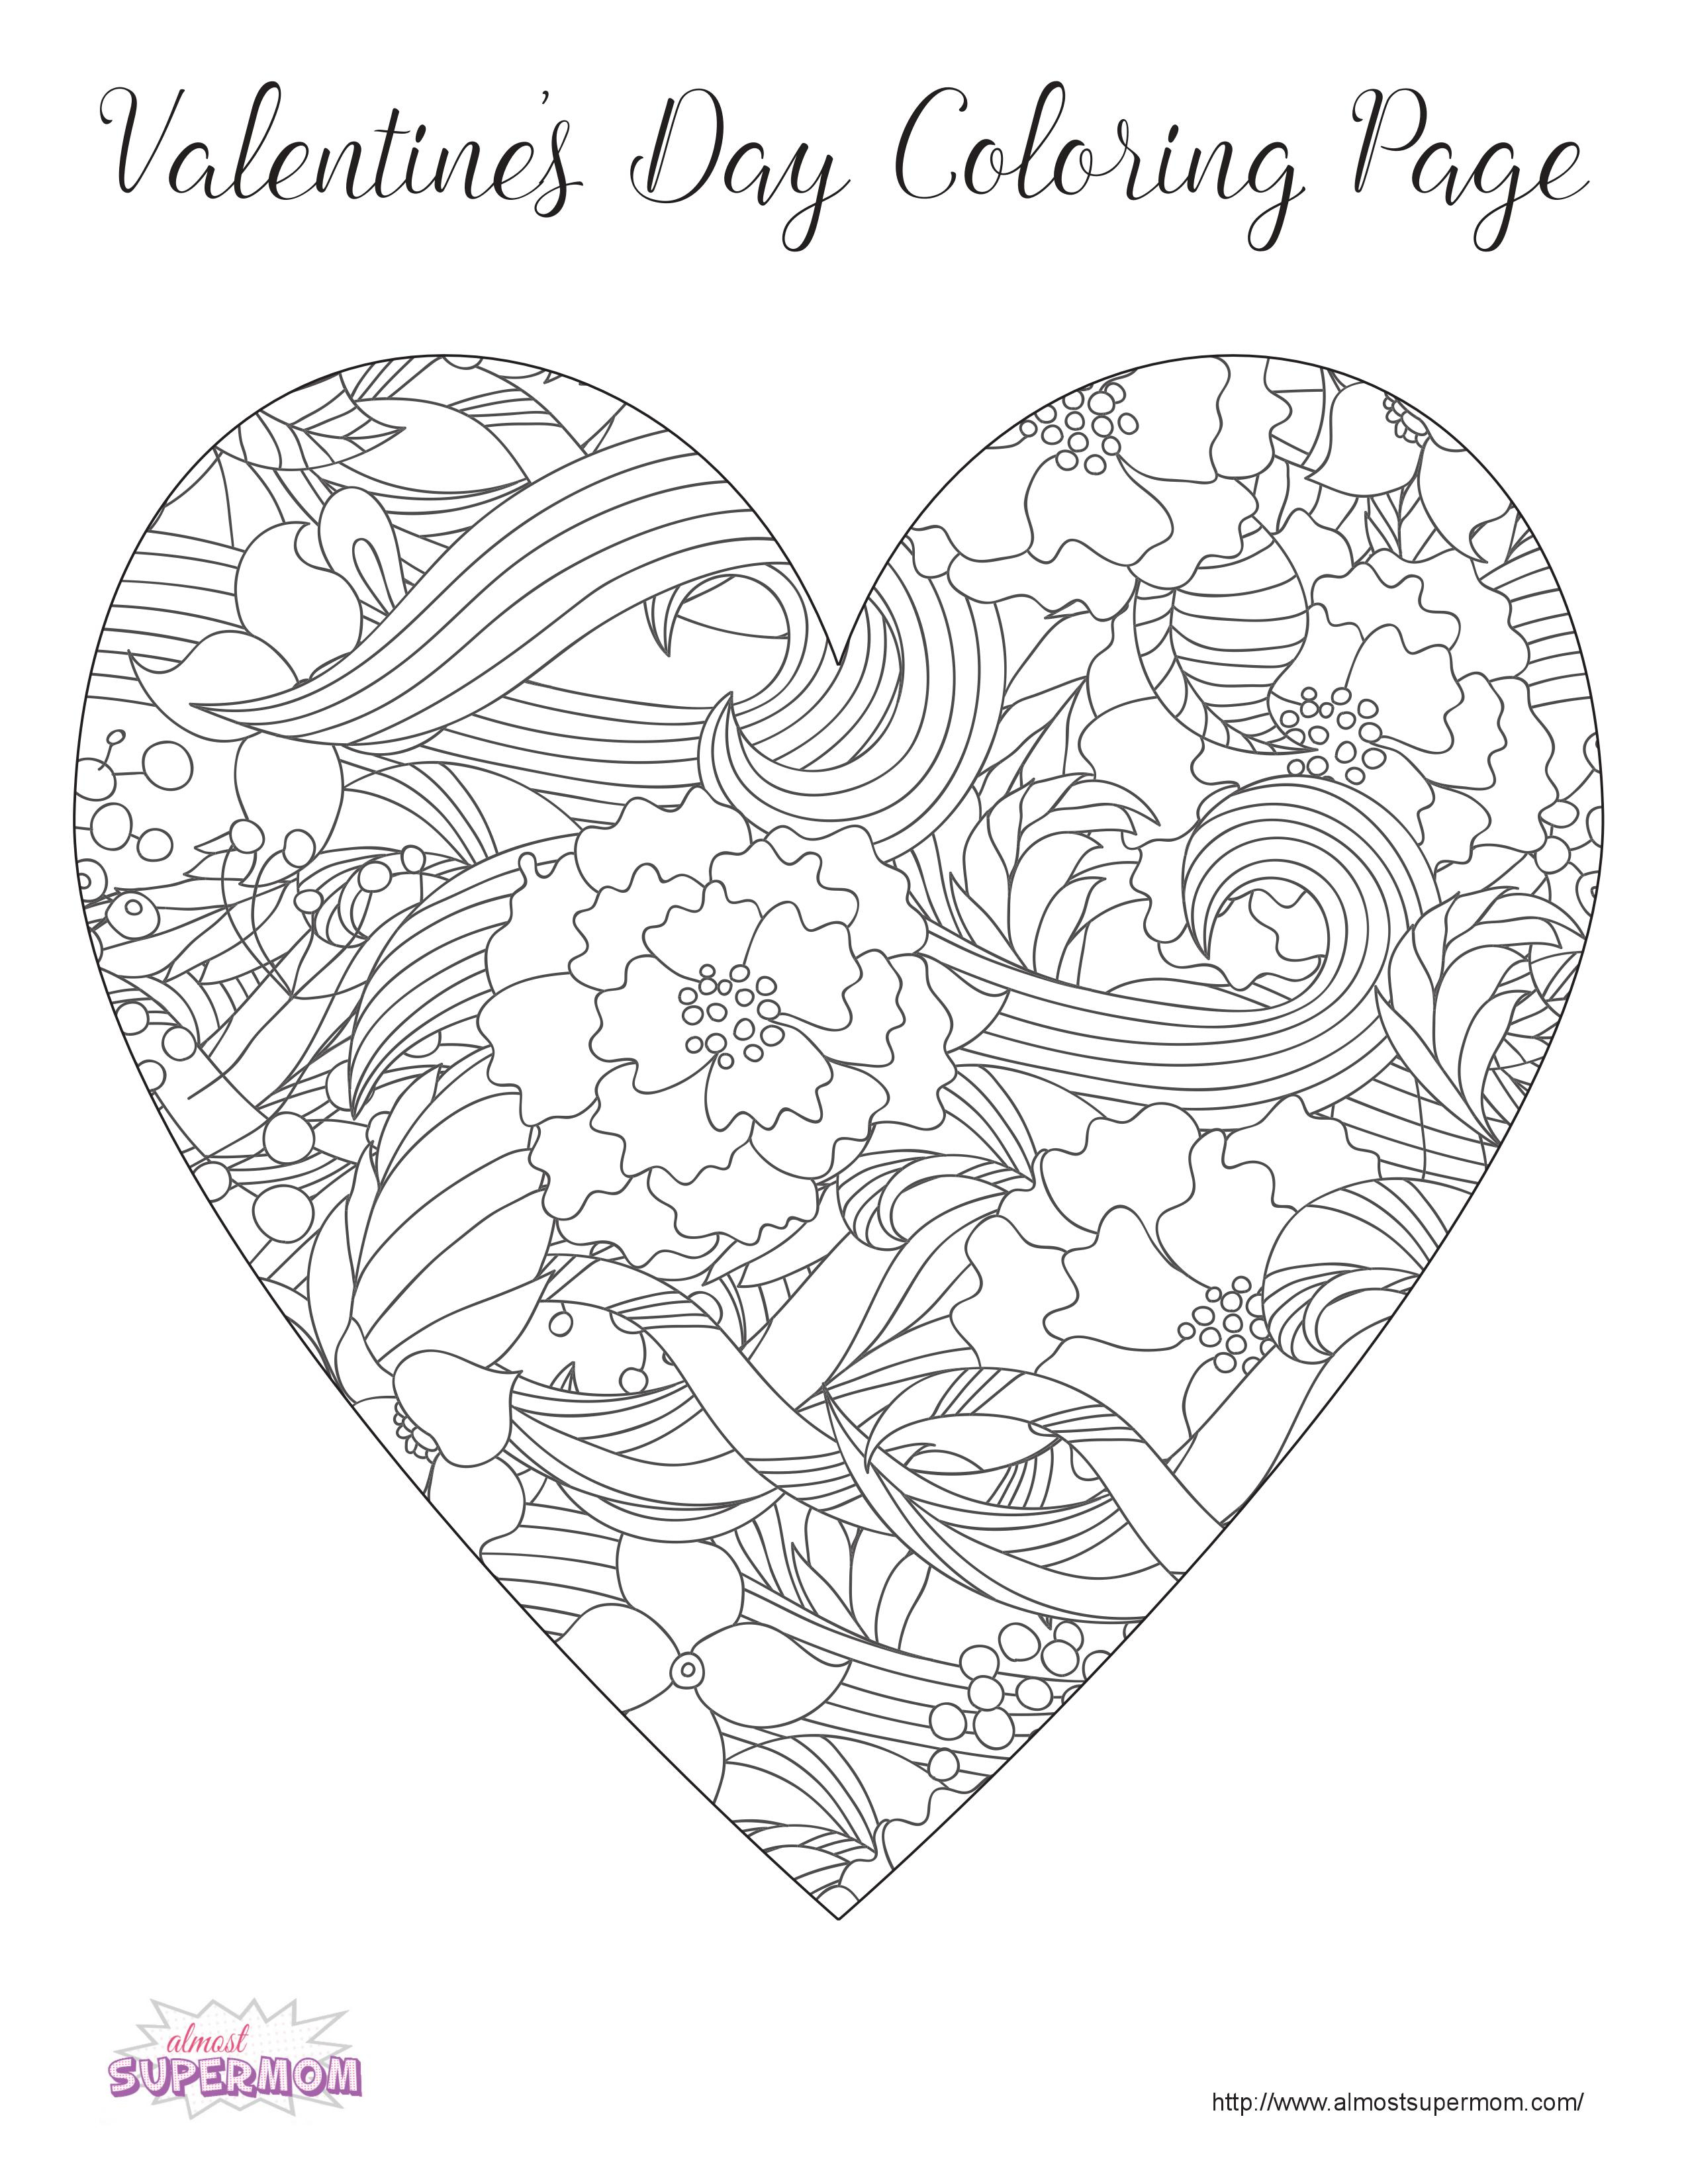 Coloring Pages Valentine Coloring Ideas Coloring Pages Of Valentines Day Staggering Ideas